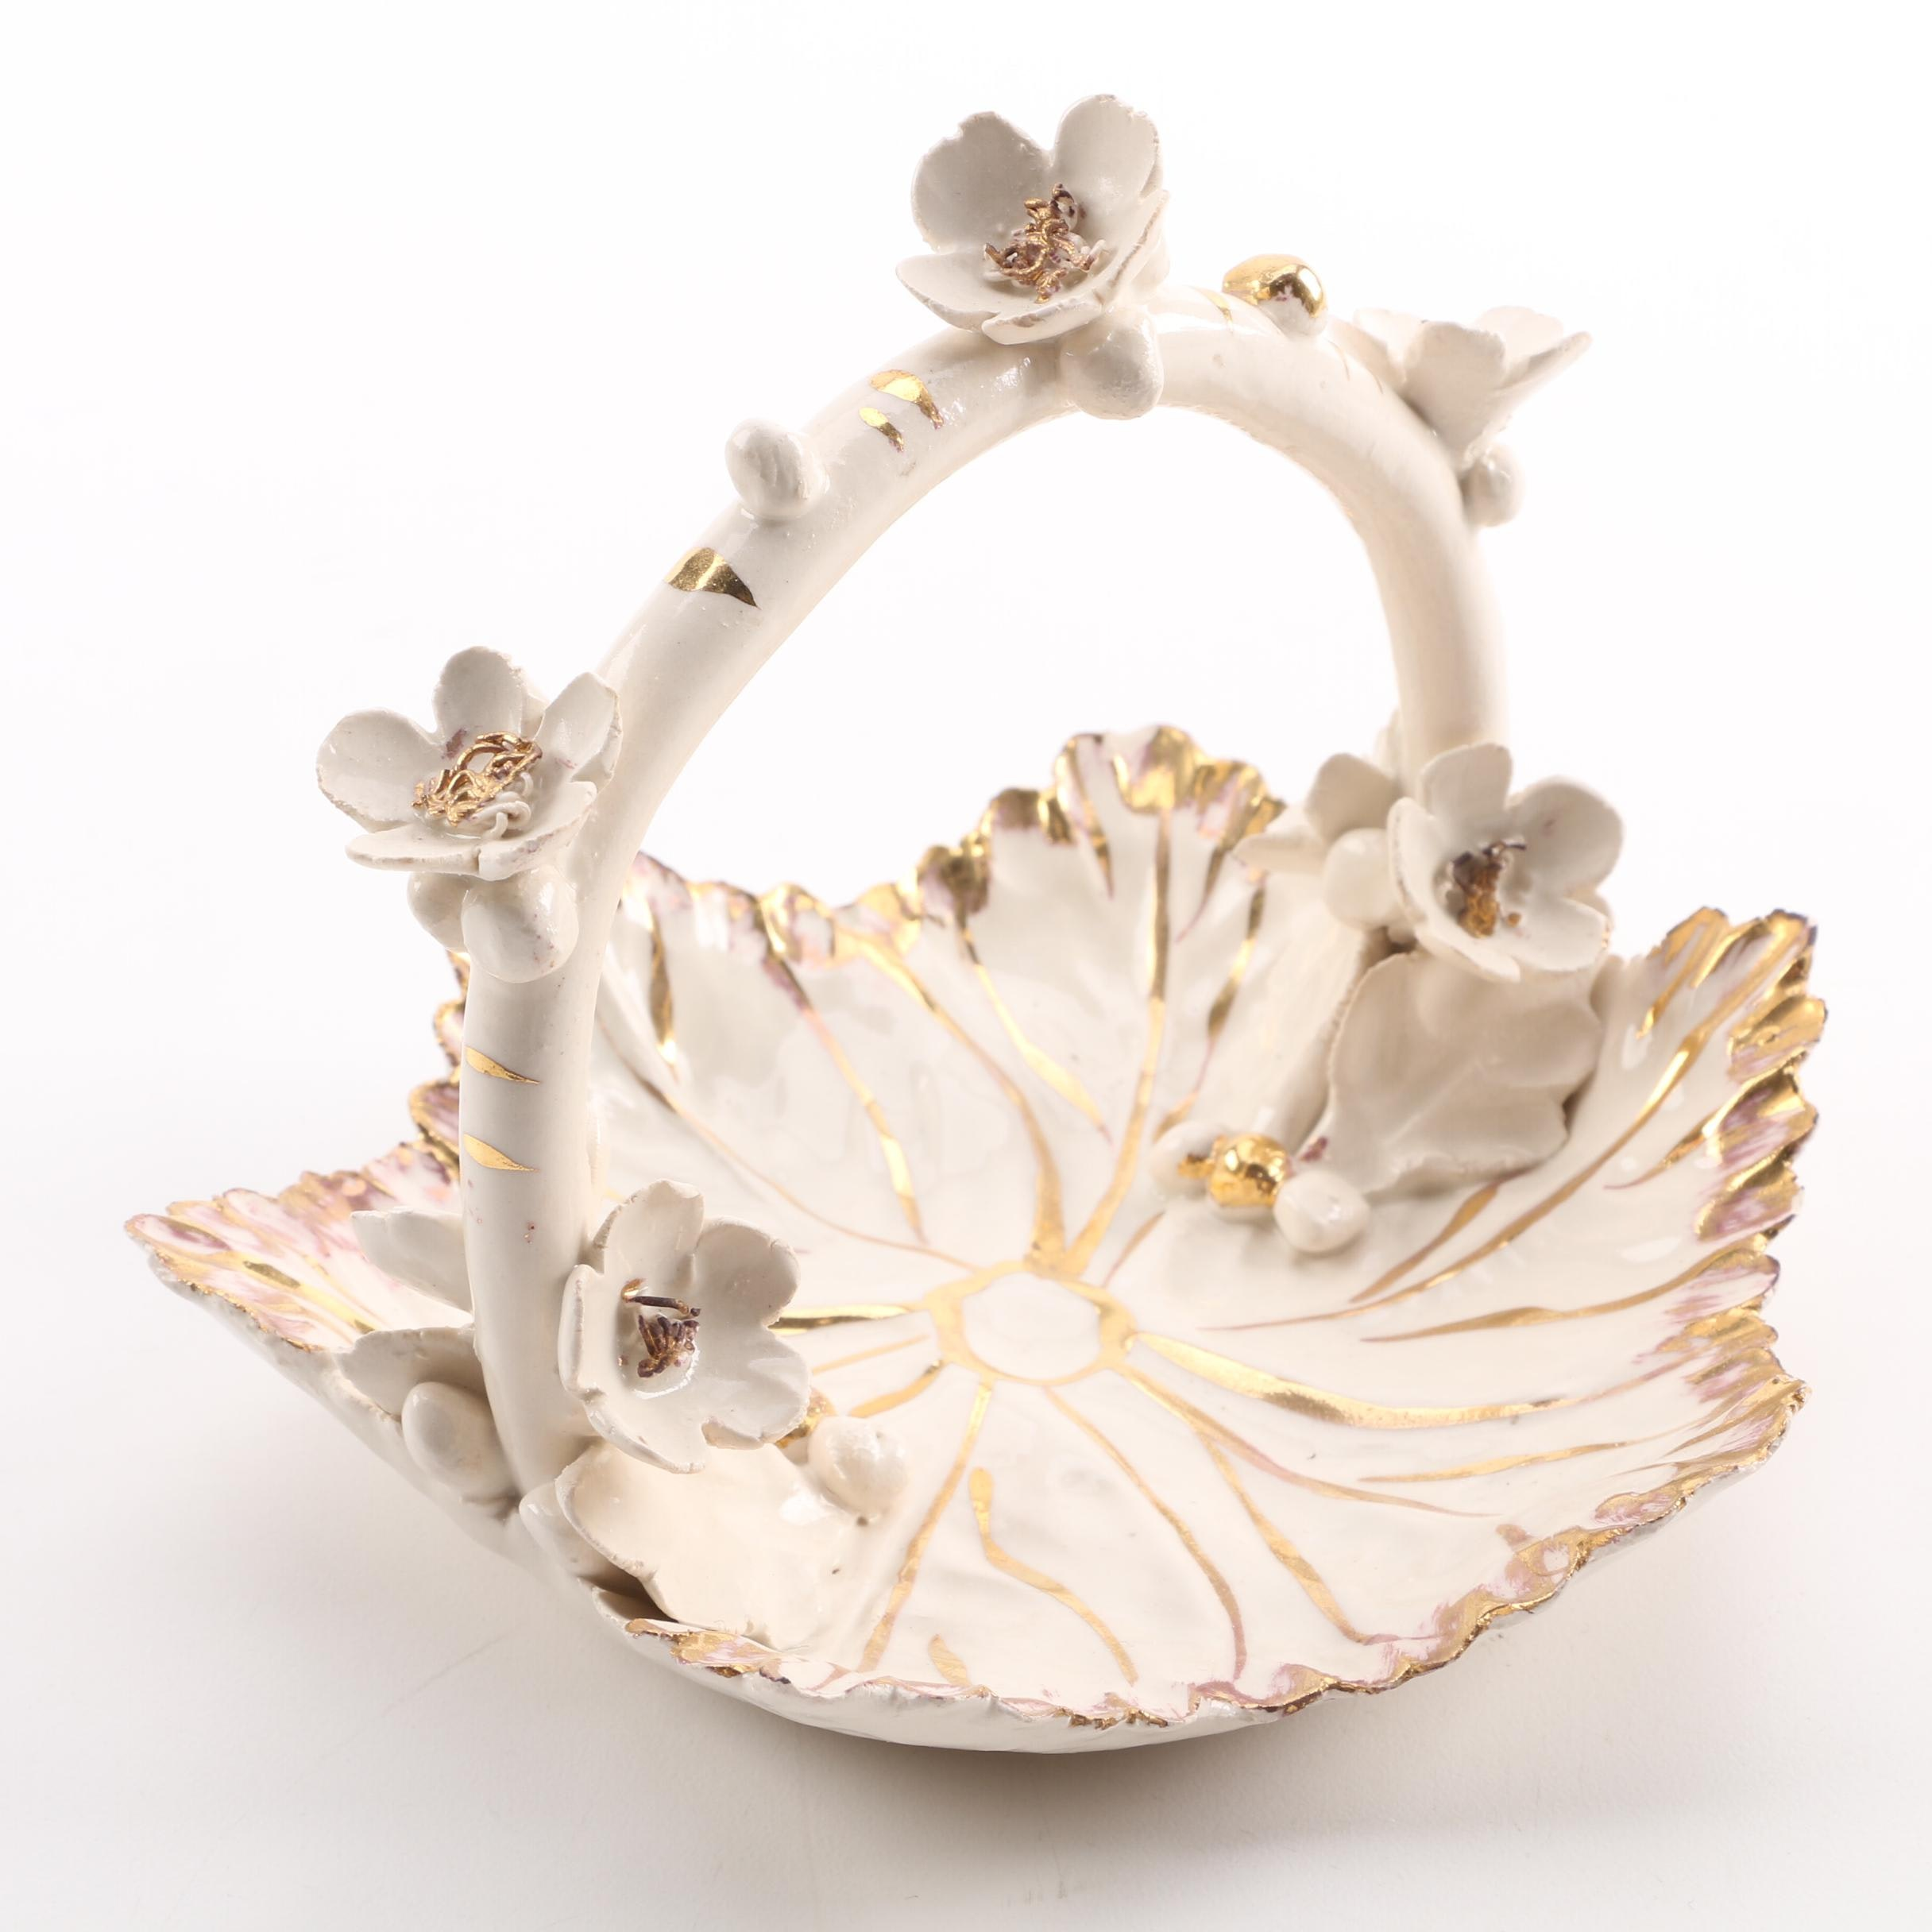 White Ceramic Italian Basket with Gold Tone Floral Accents